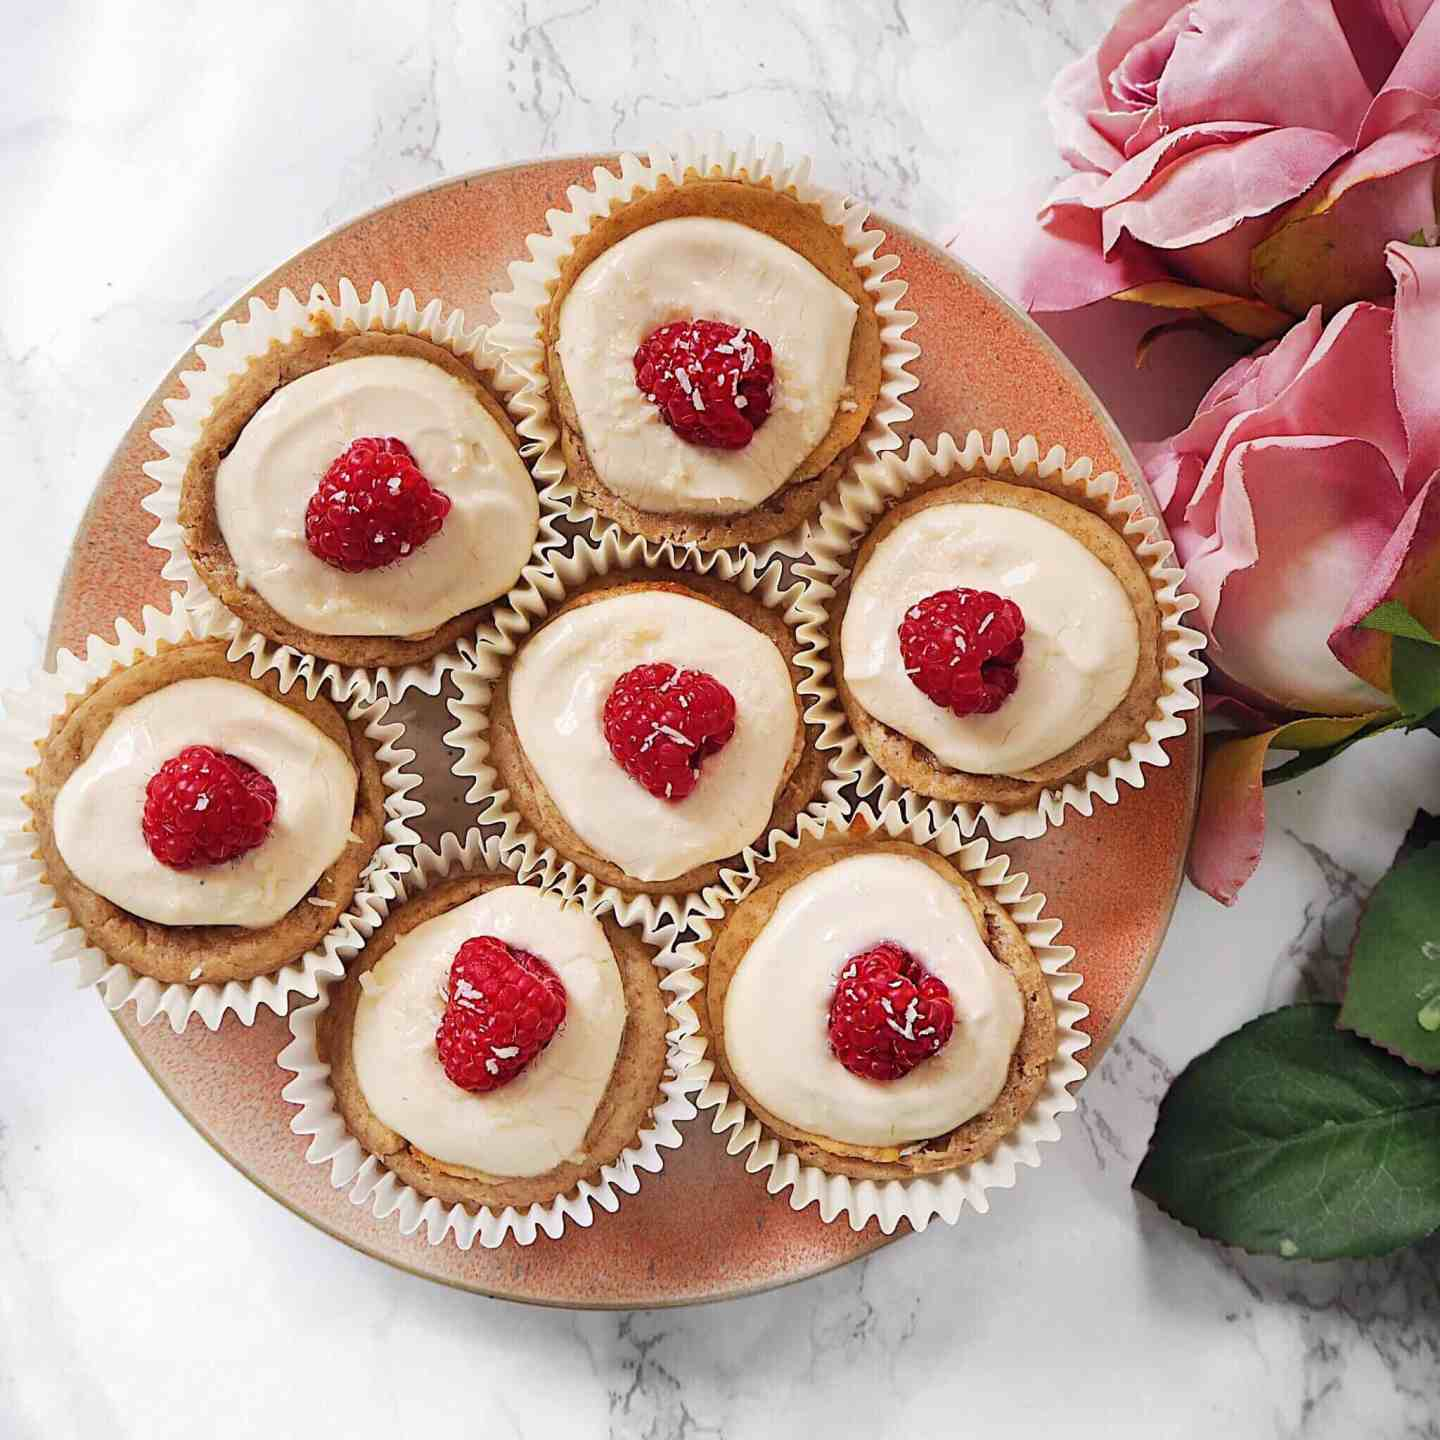 Healthy Coconut and Raspberry Muffins - Gluten Free + vegan